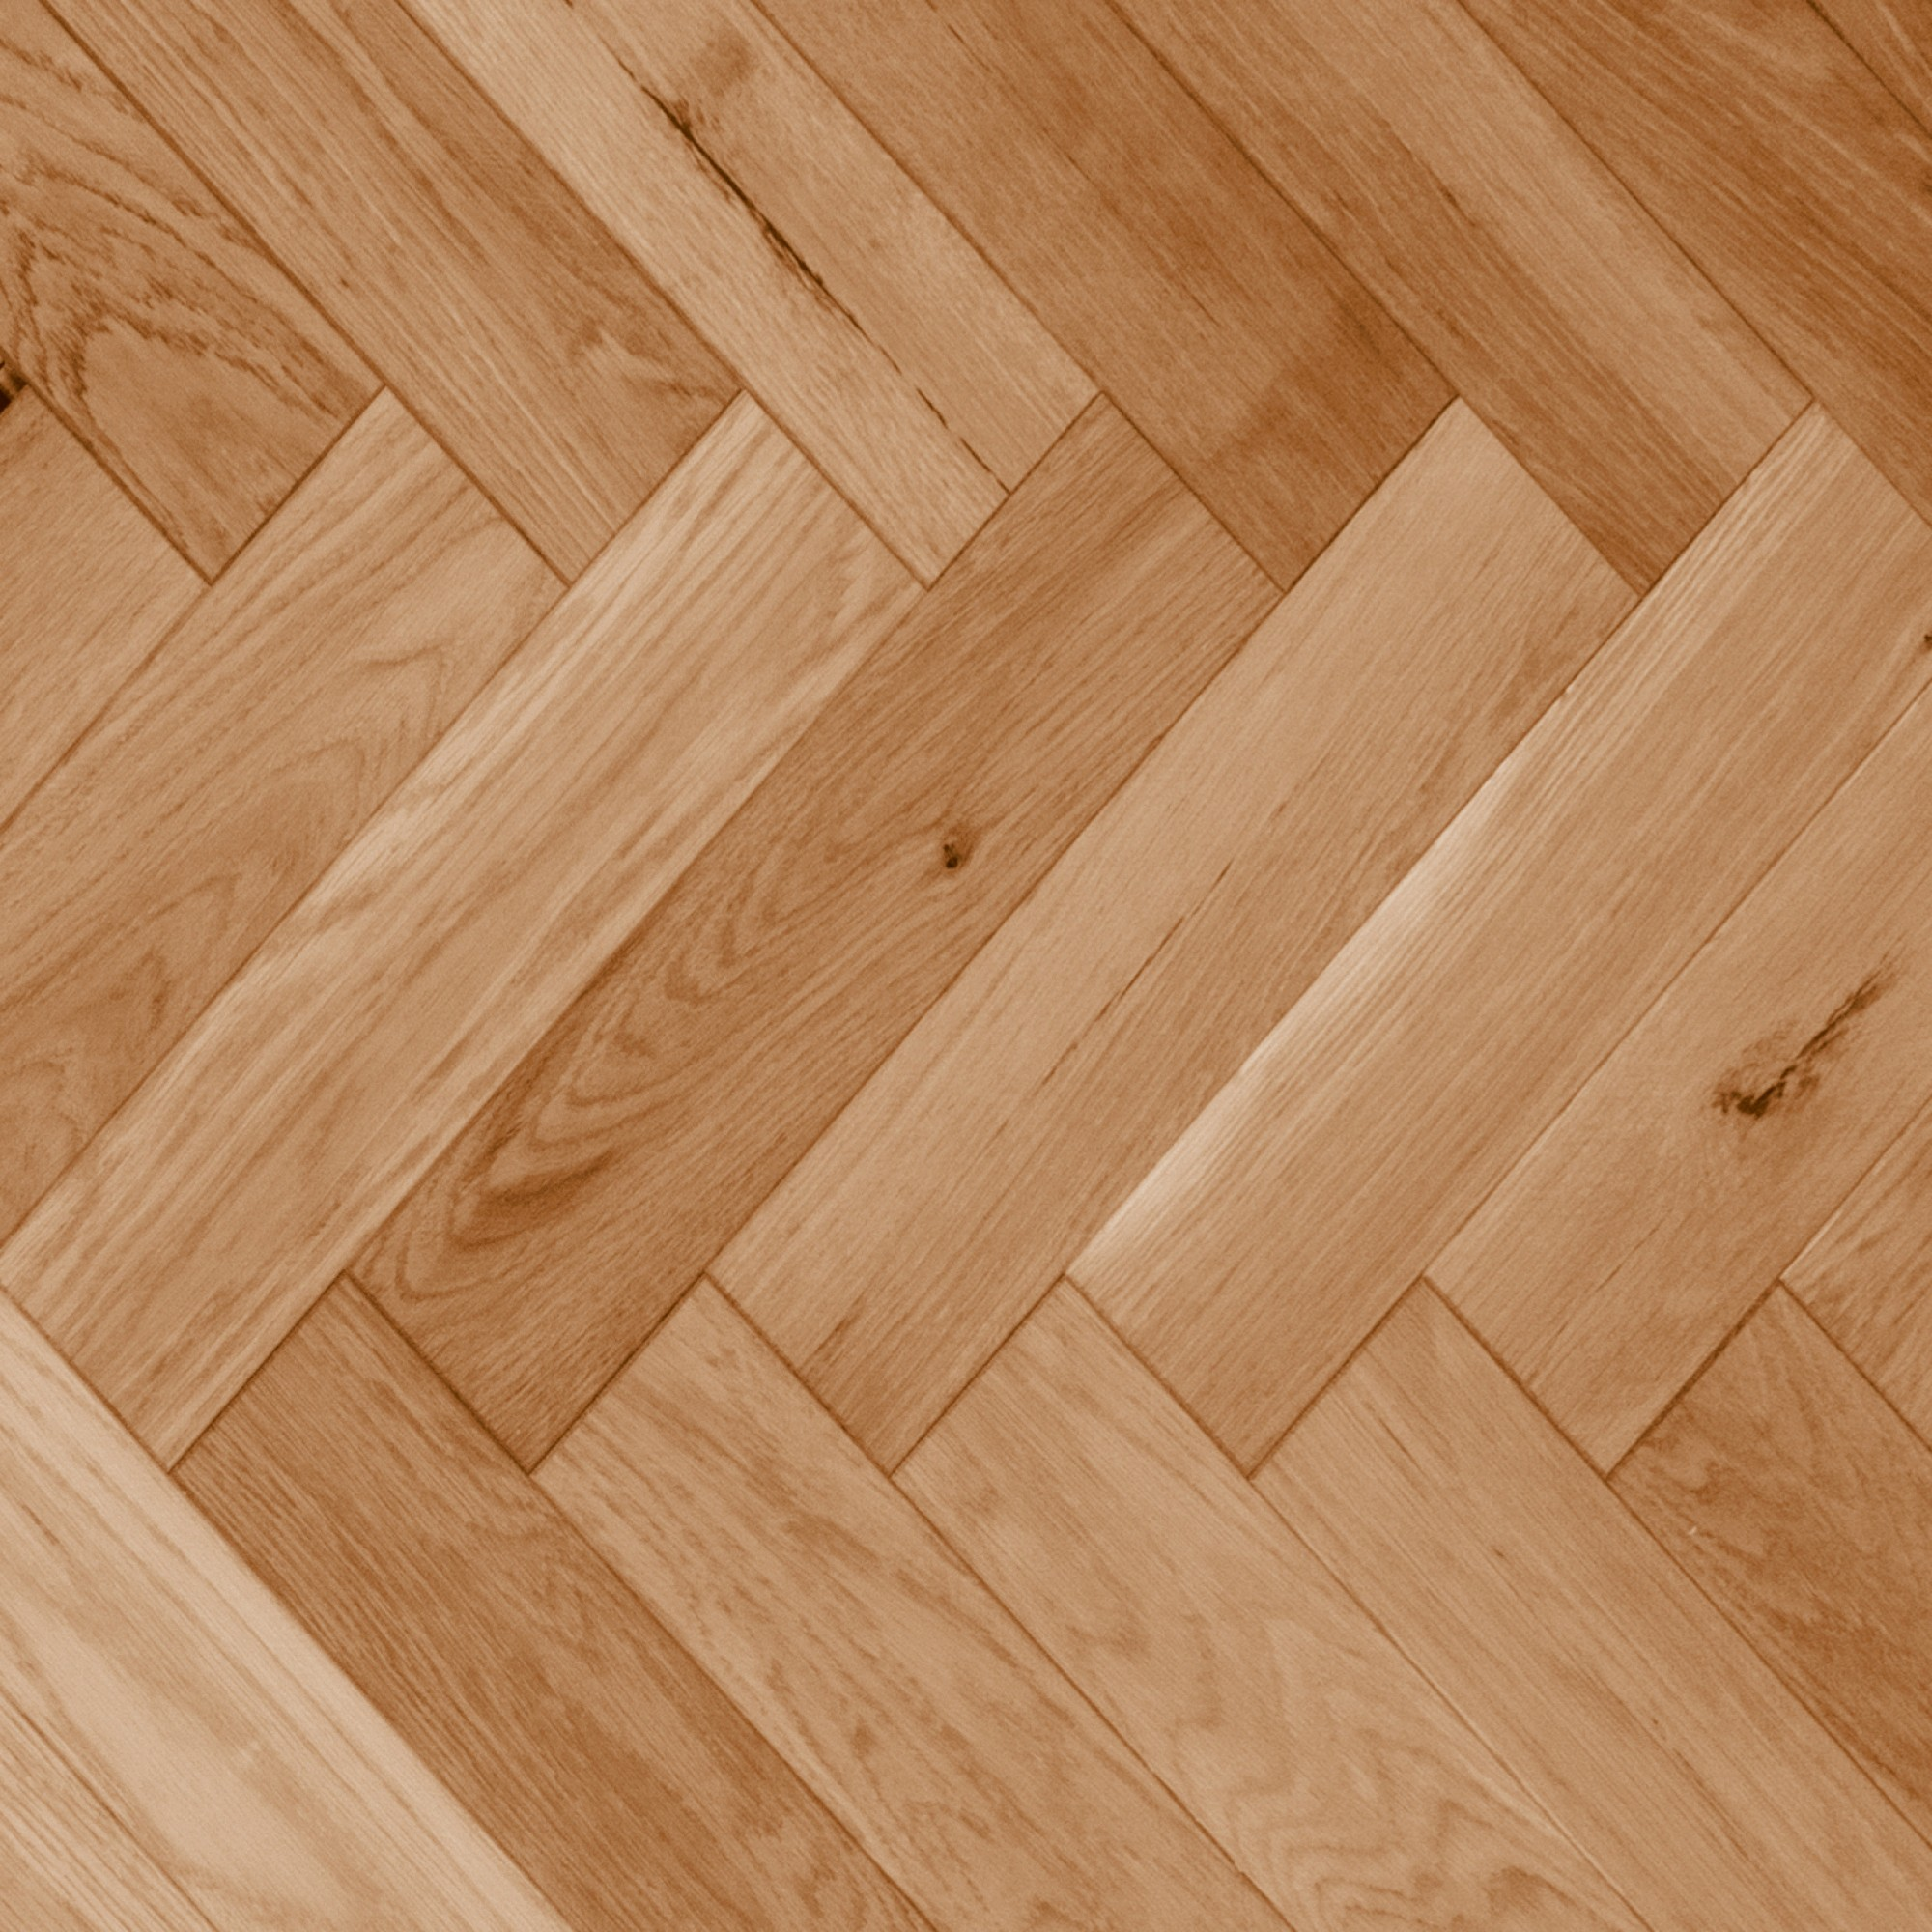 Herringbone red oak natural smooth vintage hardwood for Wood floor herringbone